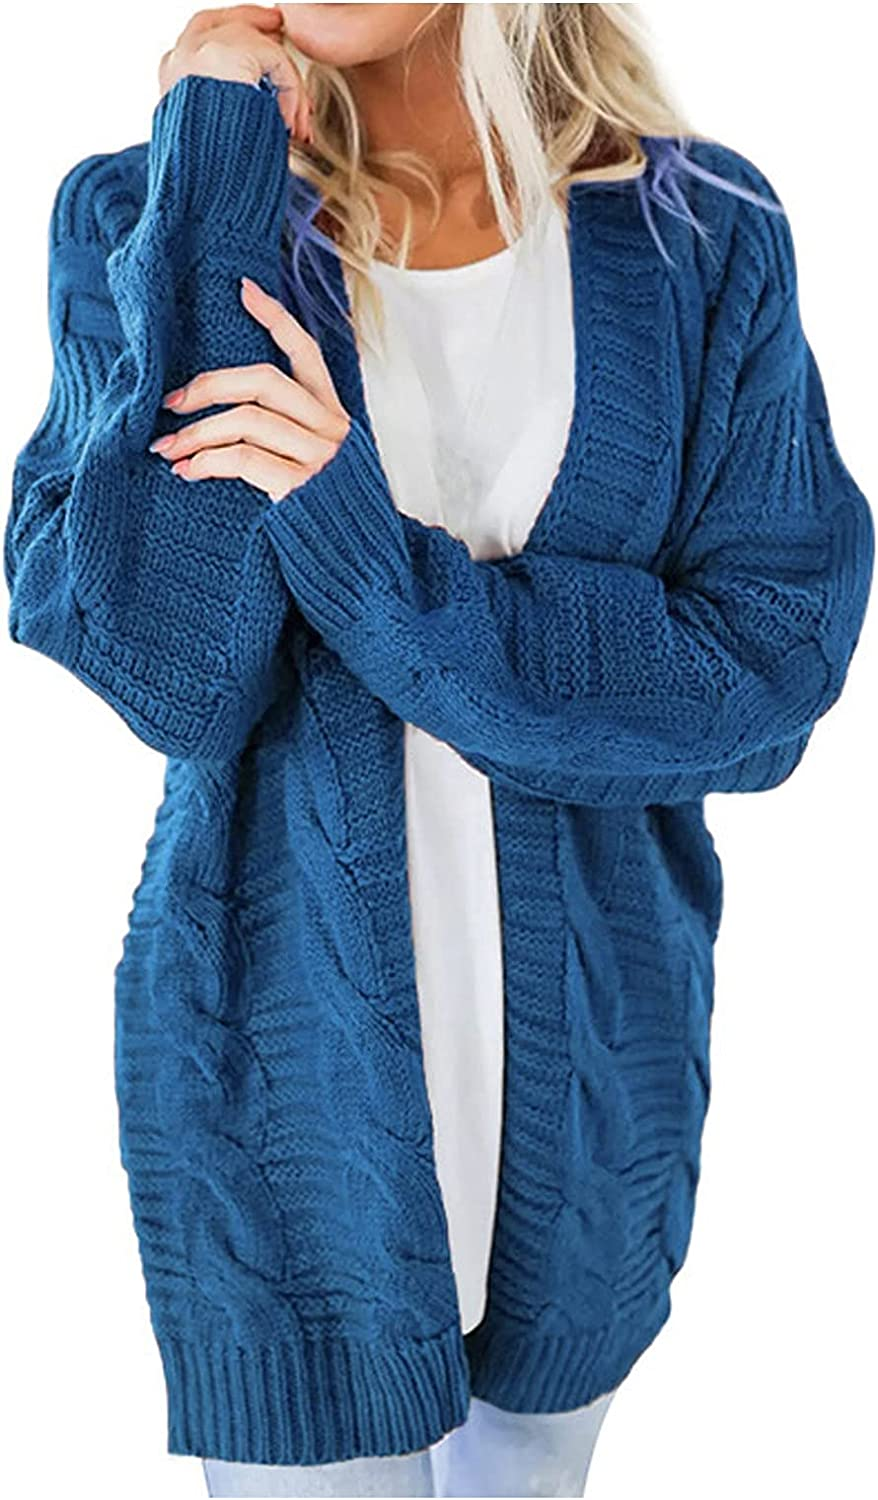 NBXNZWF Oversized Long Sweaters Women Casual Cardigan Coat Long Knitted Sweatshirt with Pockets